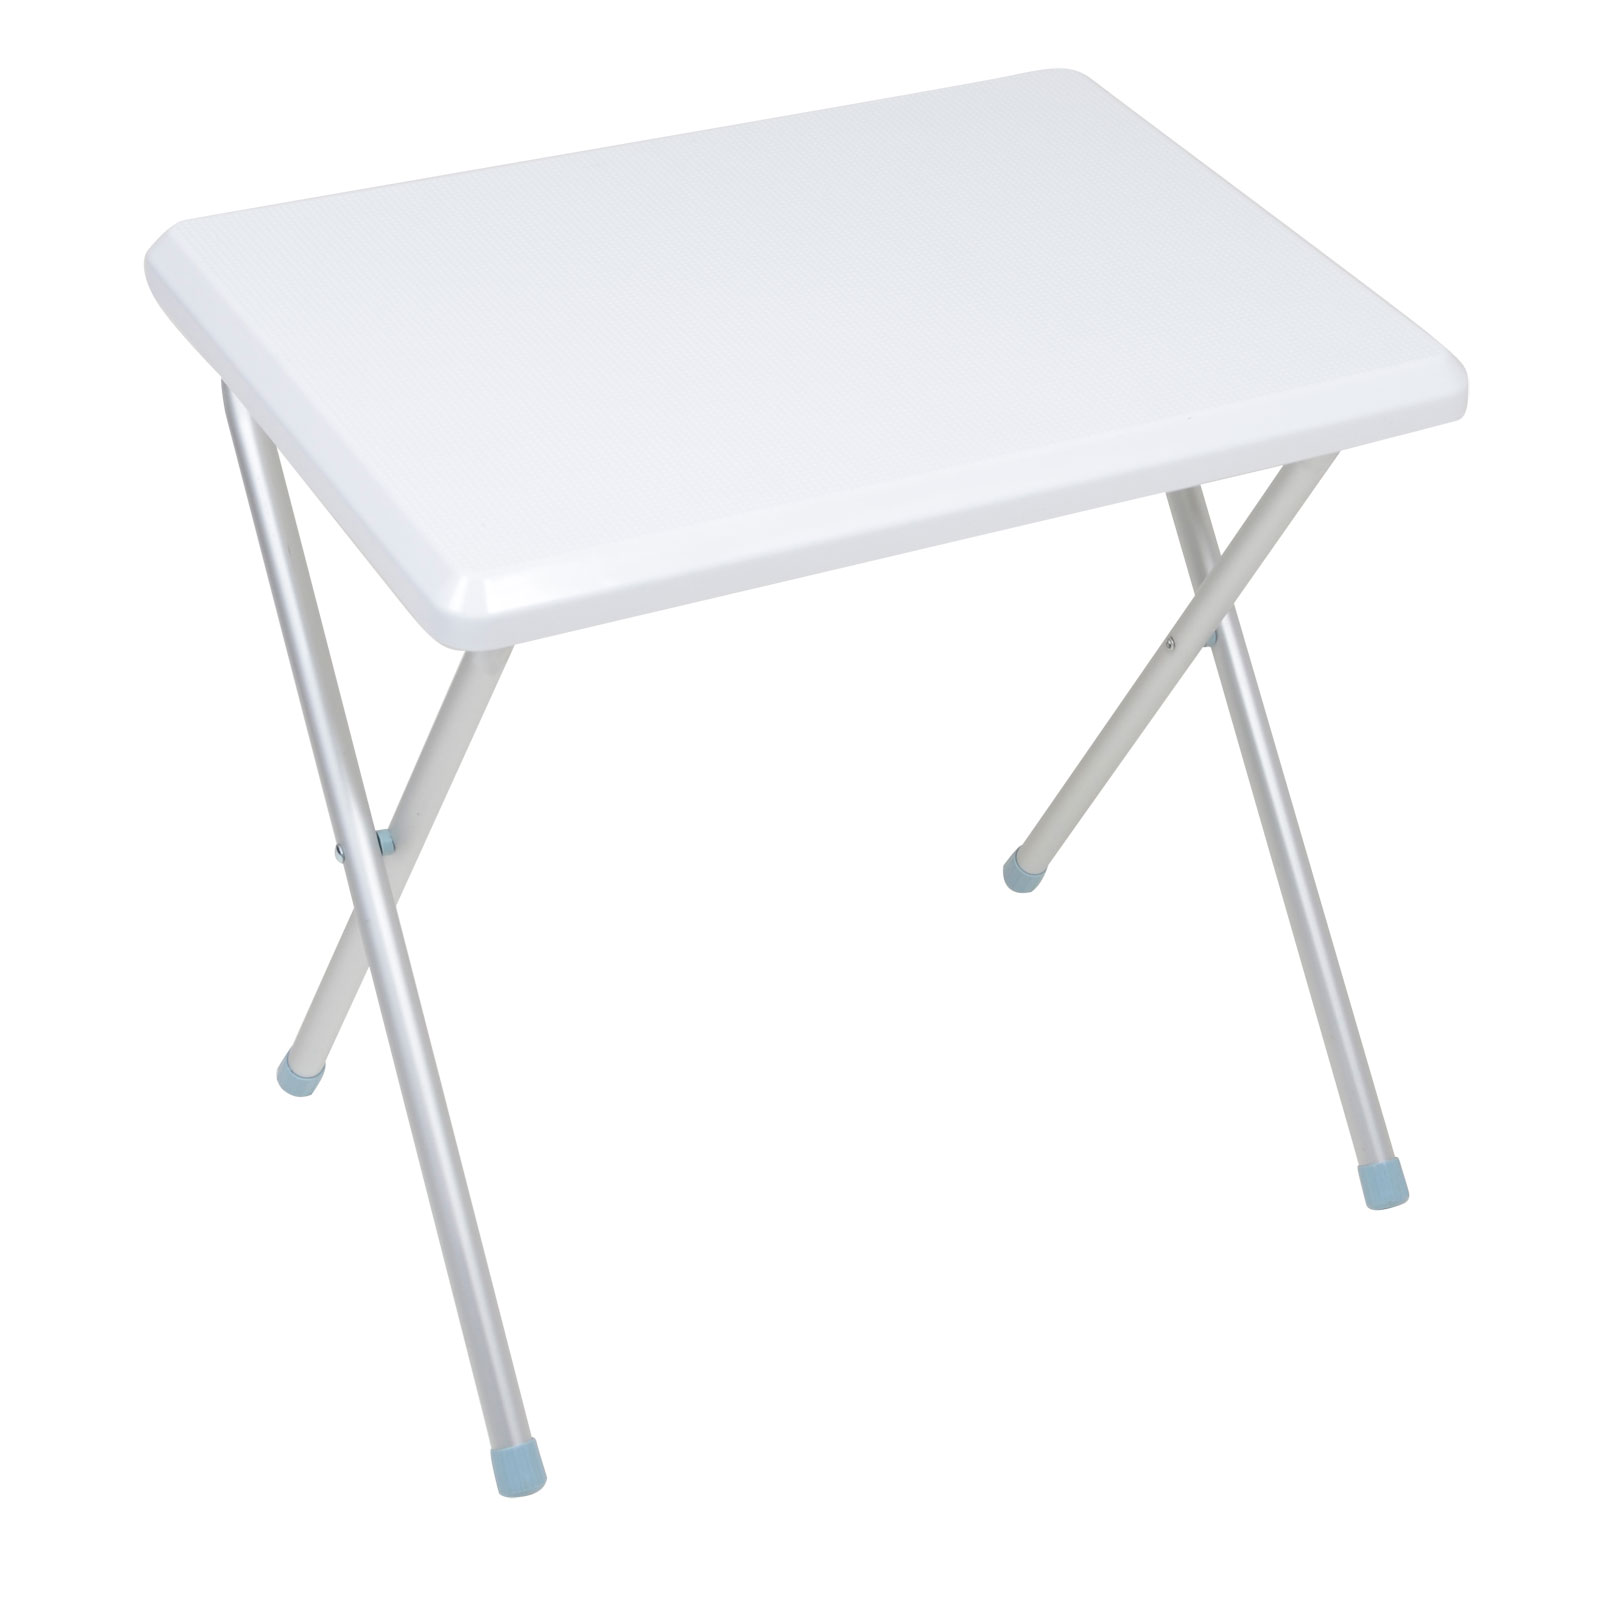 Small Folding Table : Azuma Small White Folding Portable Camping Picnic Outdoor Dinner ...